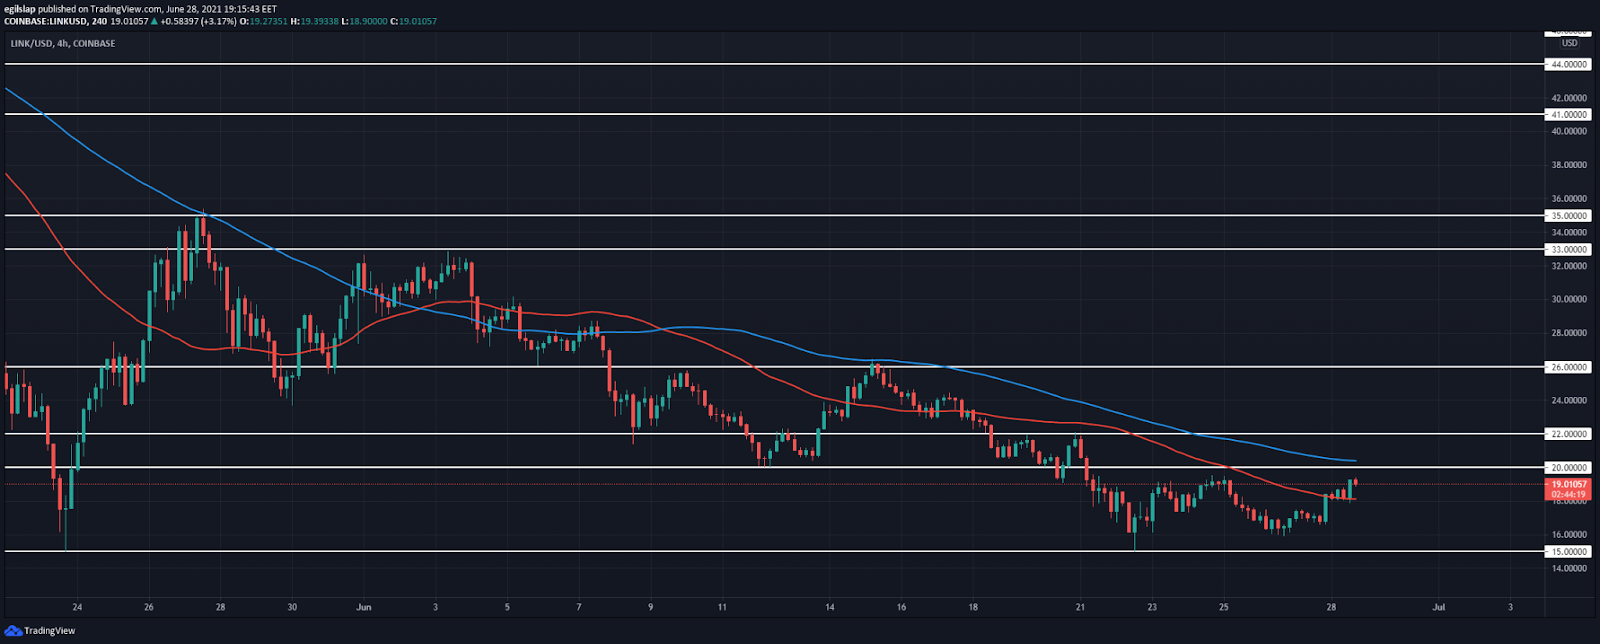 Chainlink price analysis: Chainlink aims to retest $20 resistance, move lower from there?